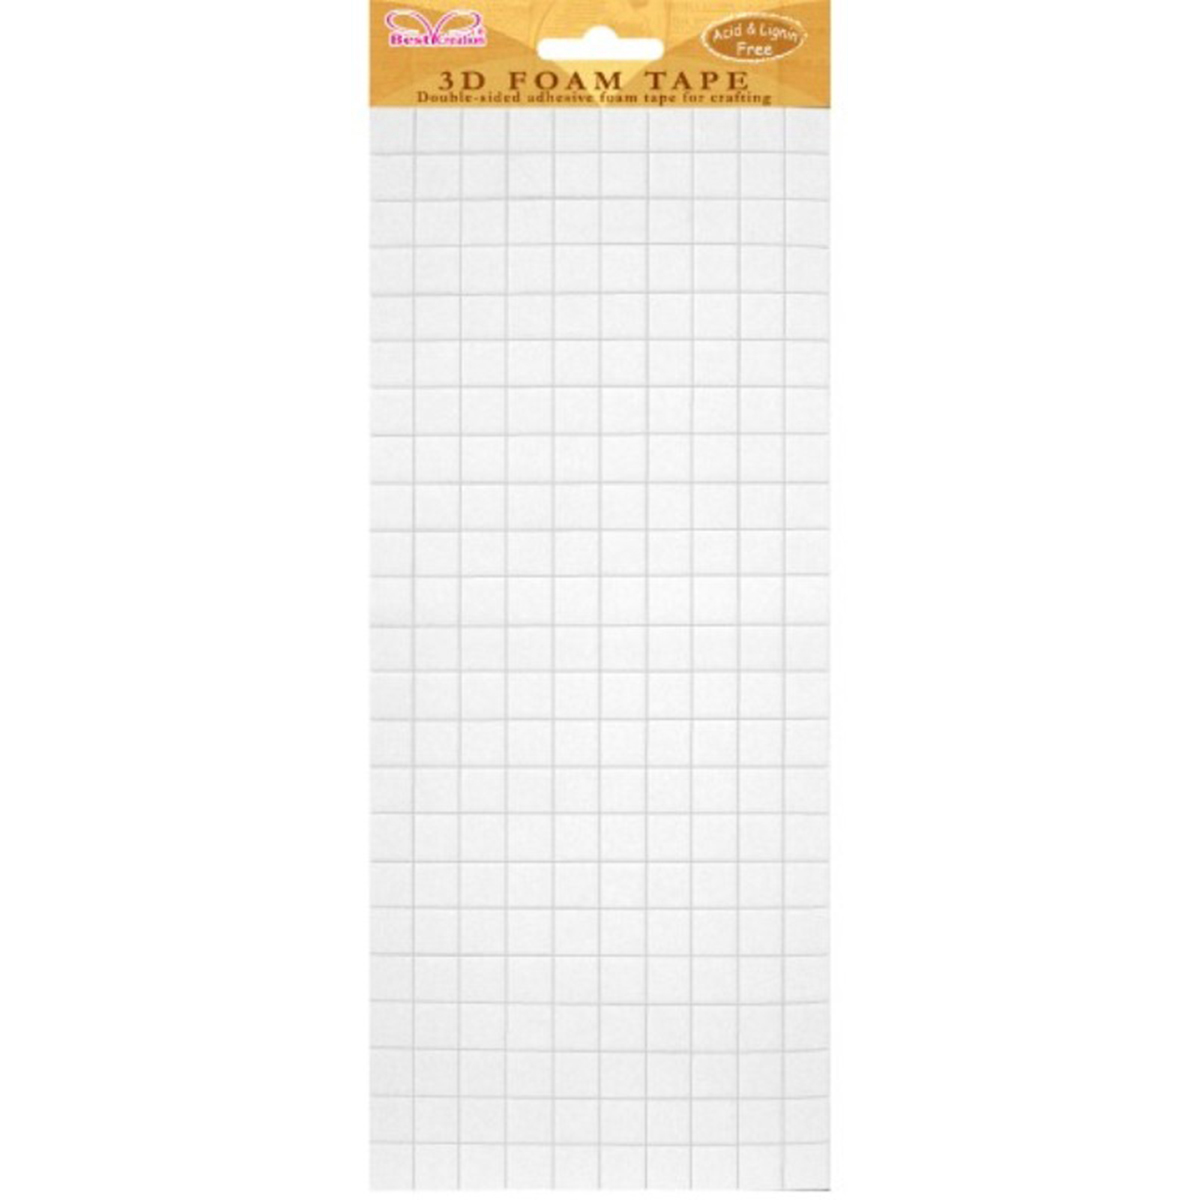 Best Creation Double-Sided Foam Tape-Big Squares